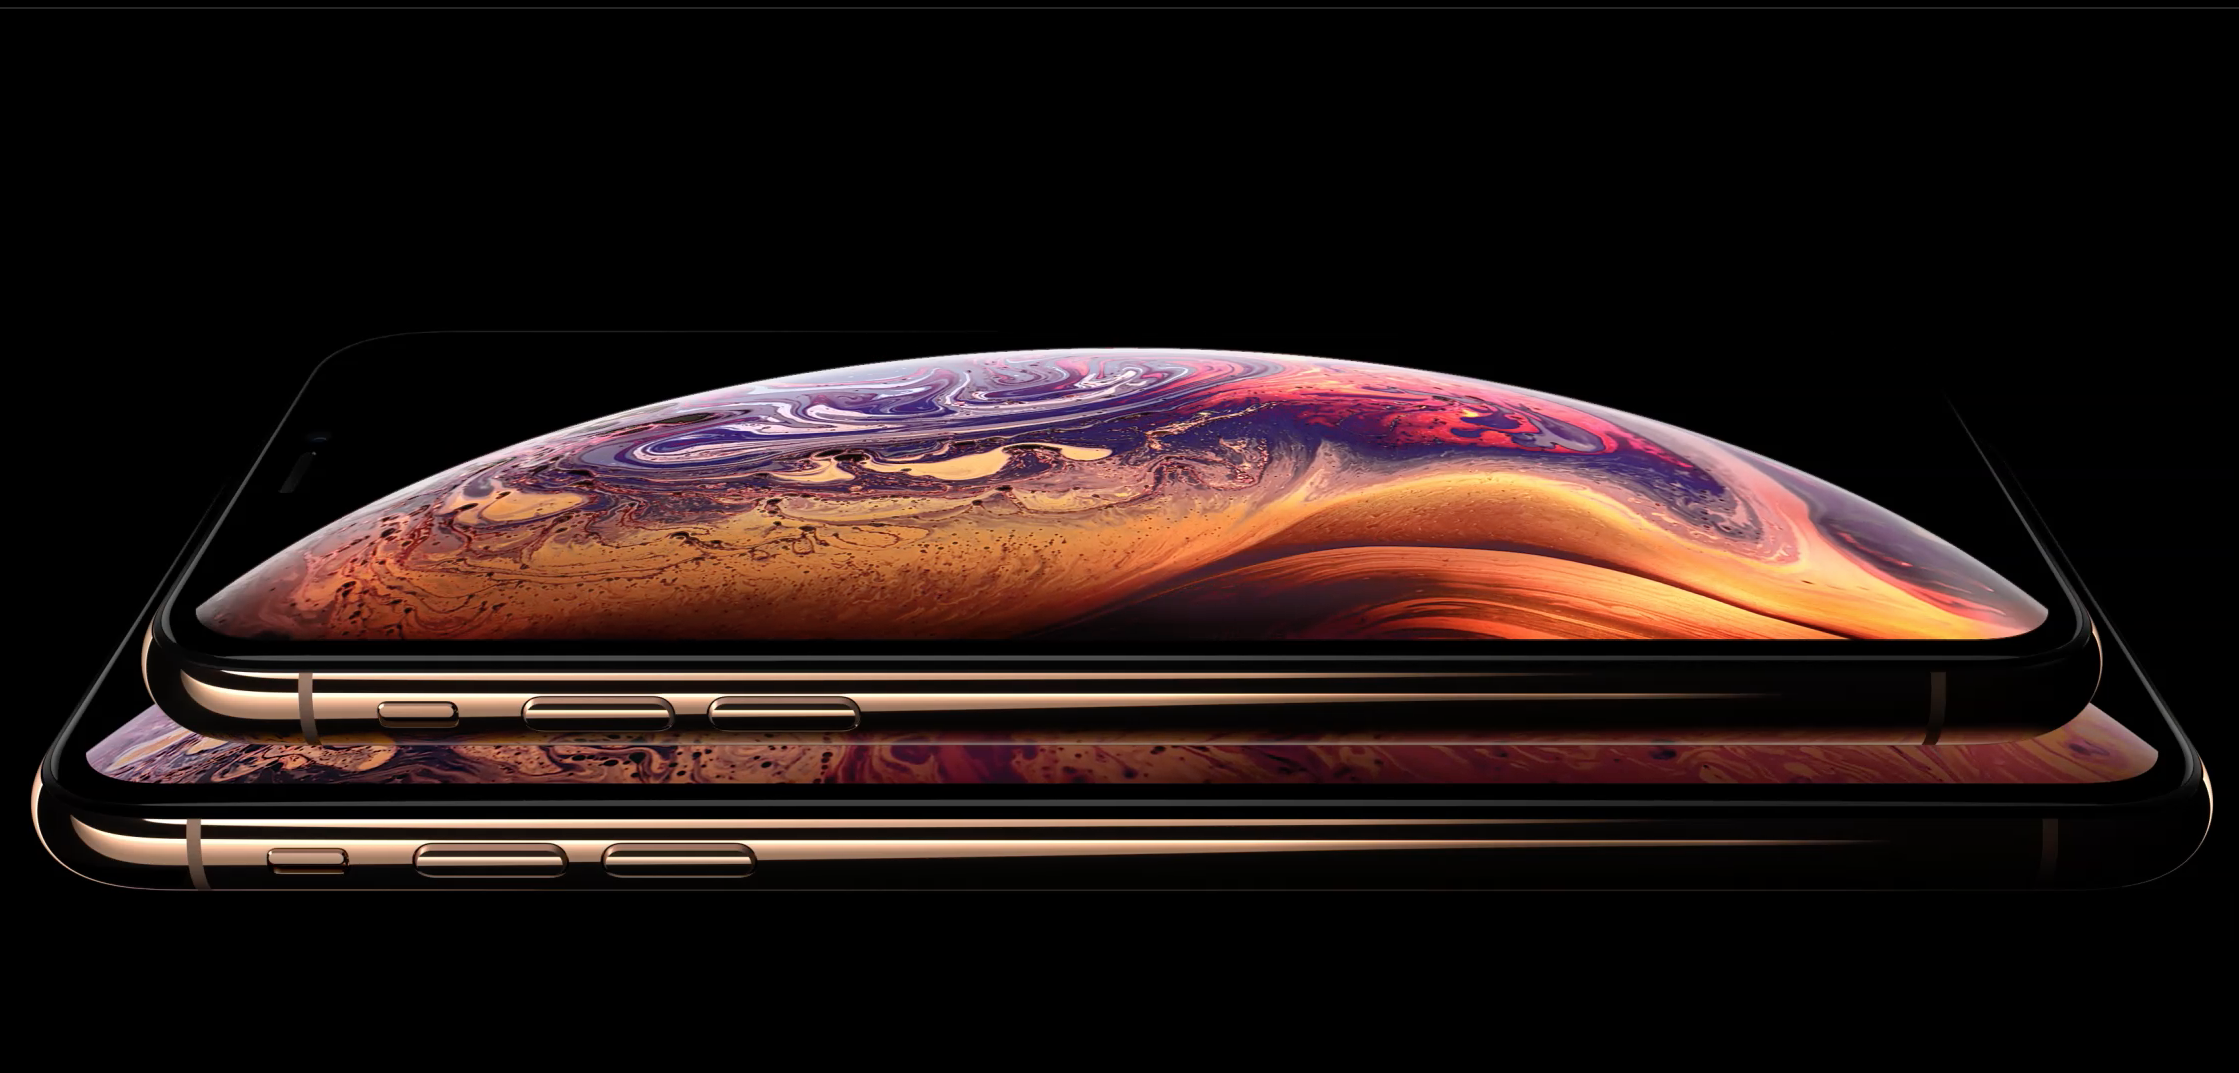 Download The All New Iphone Xs Wallpaper Here Ultralinx